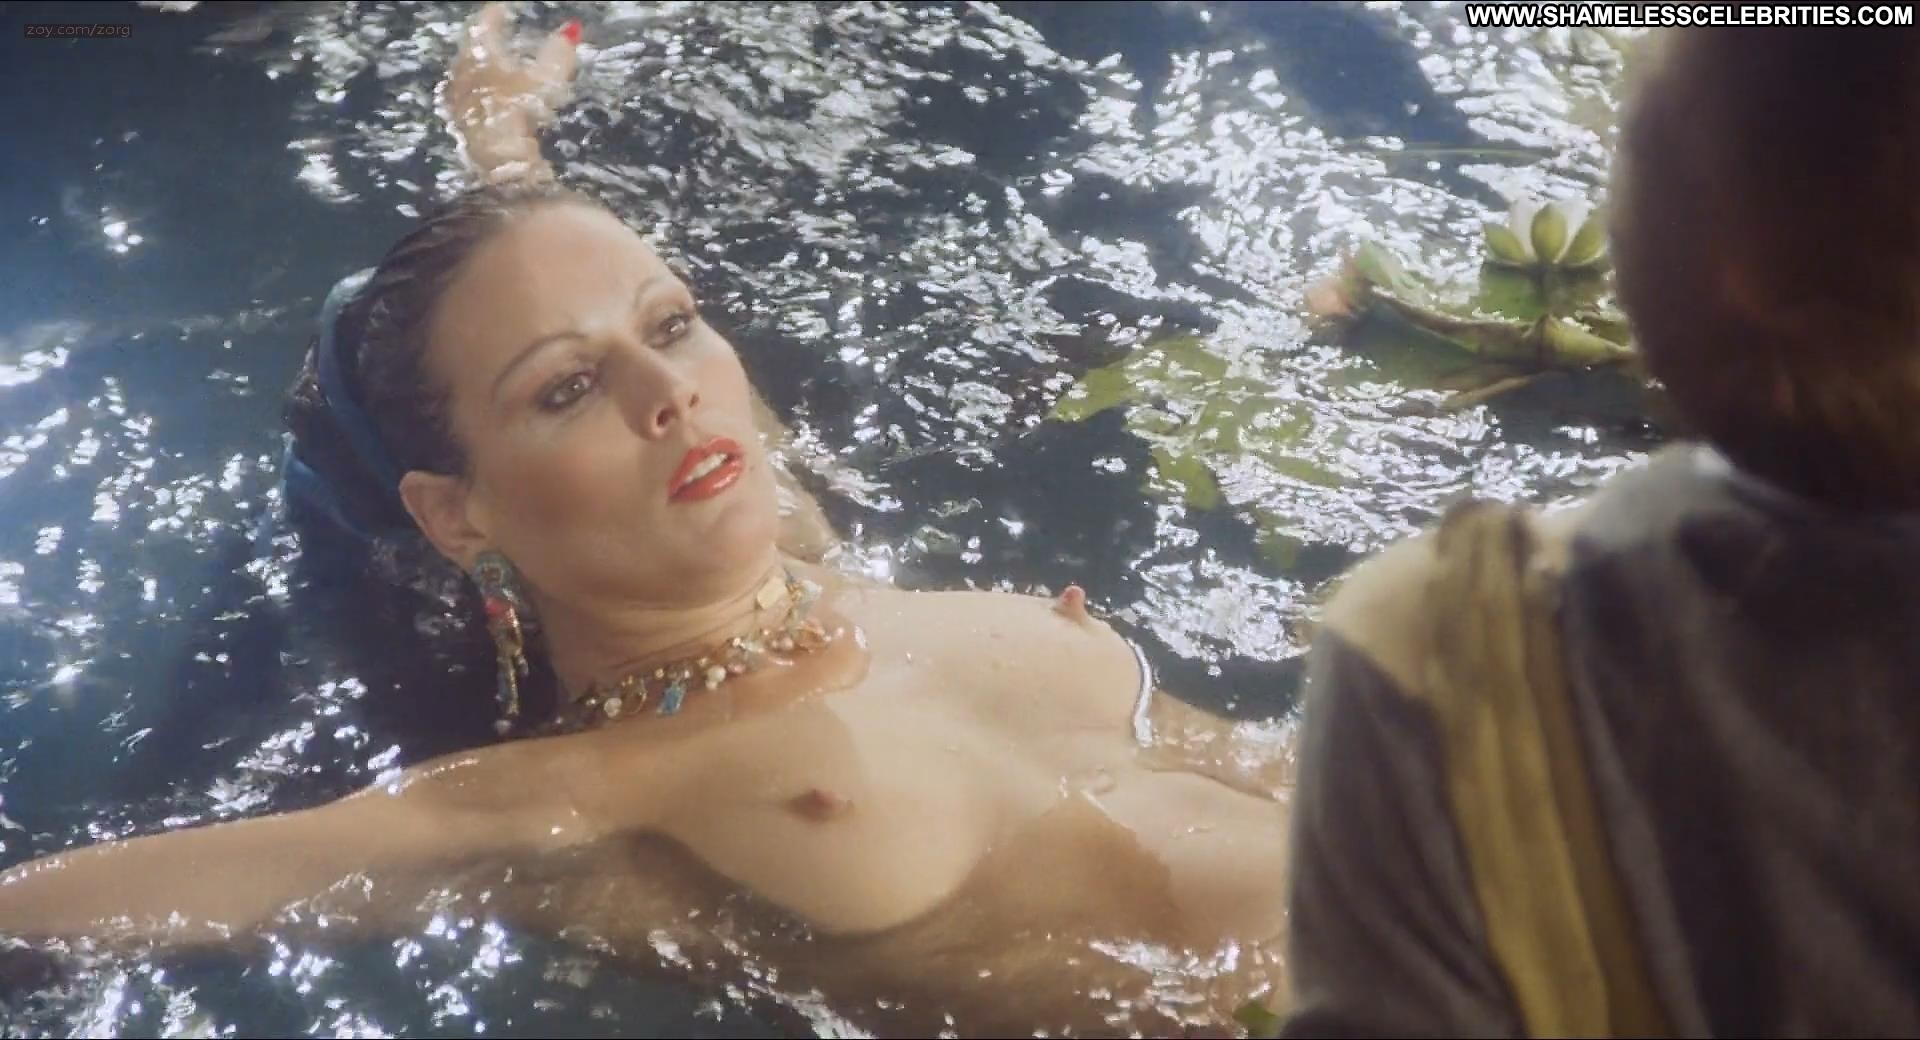 History! Celebrities nude films site question